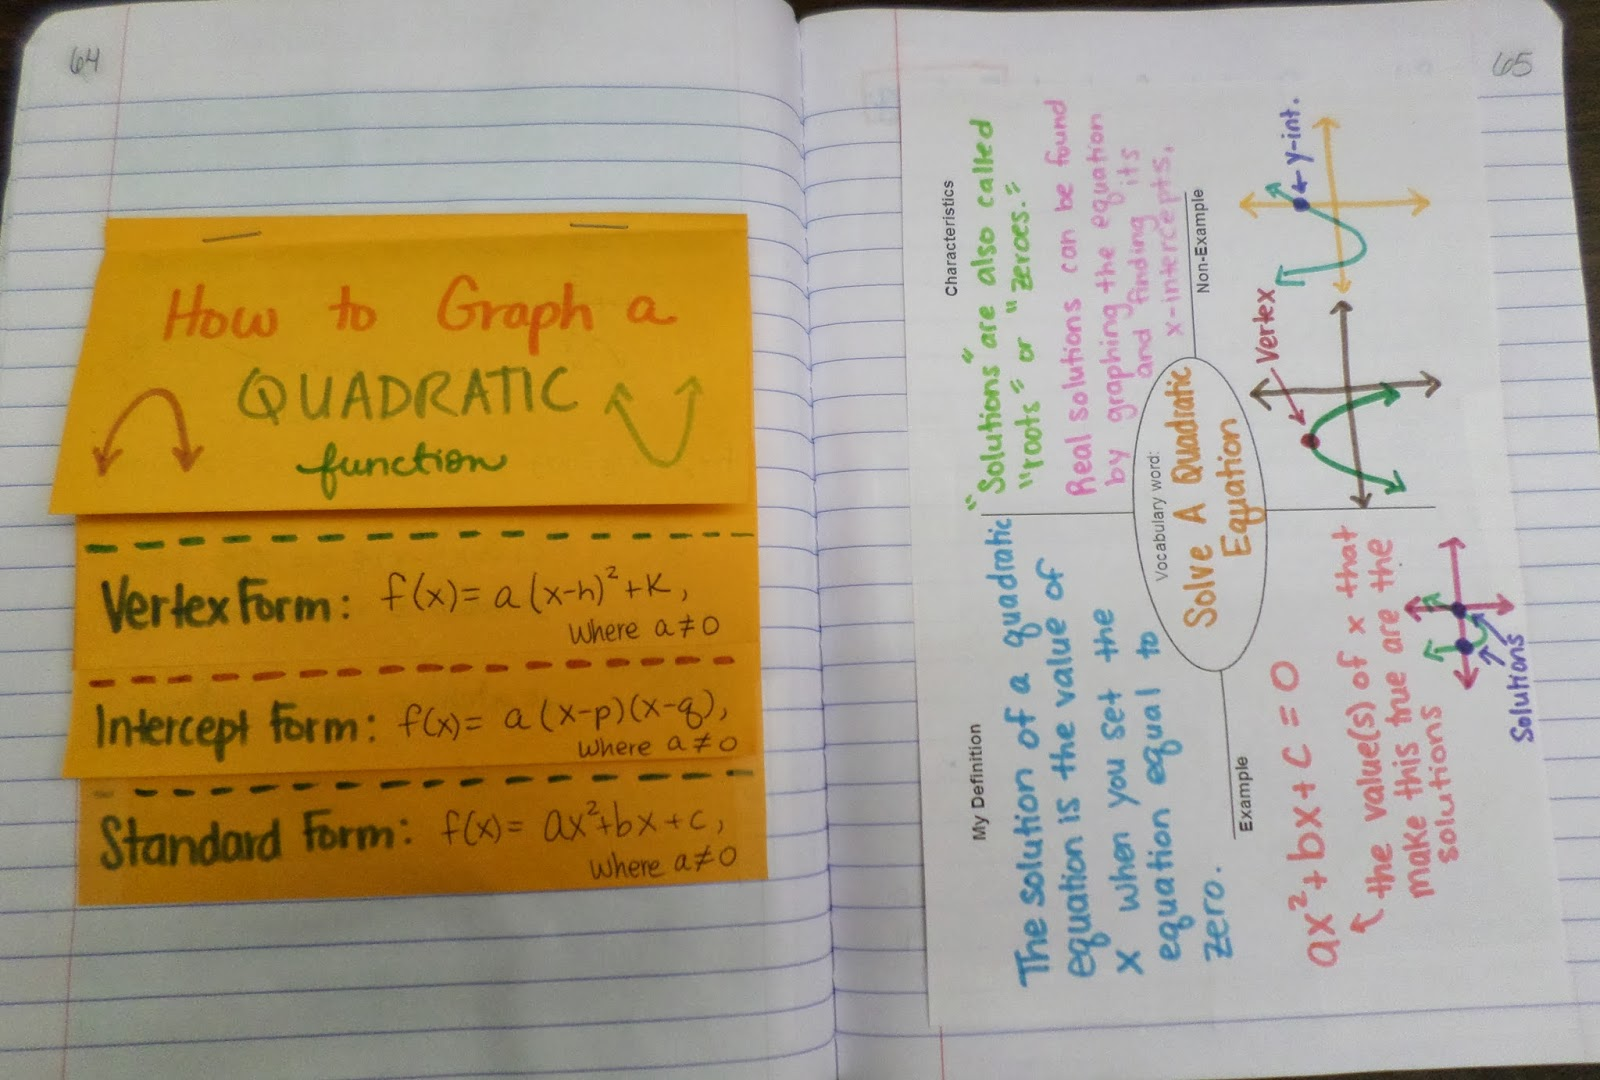 Math = Love: Solving Quadratics by Graphing